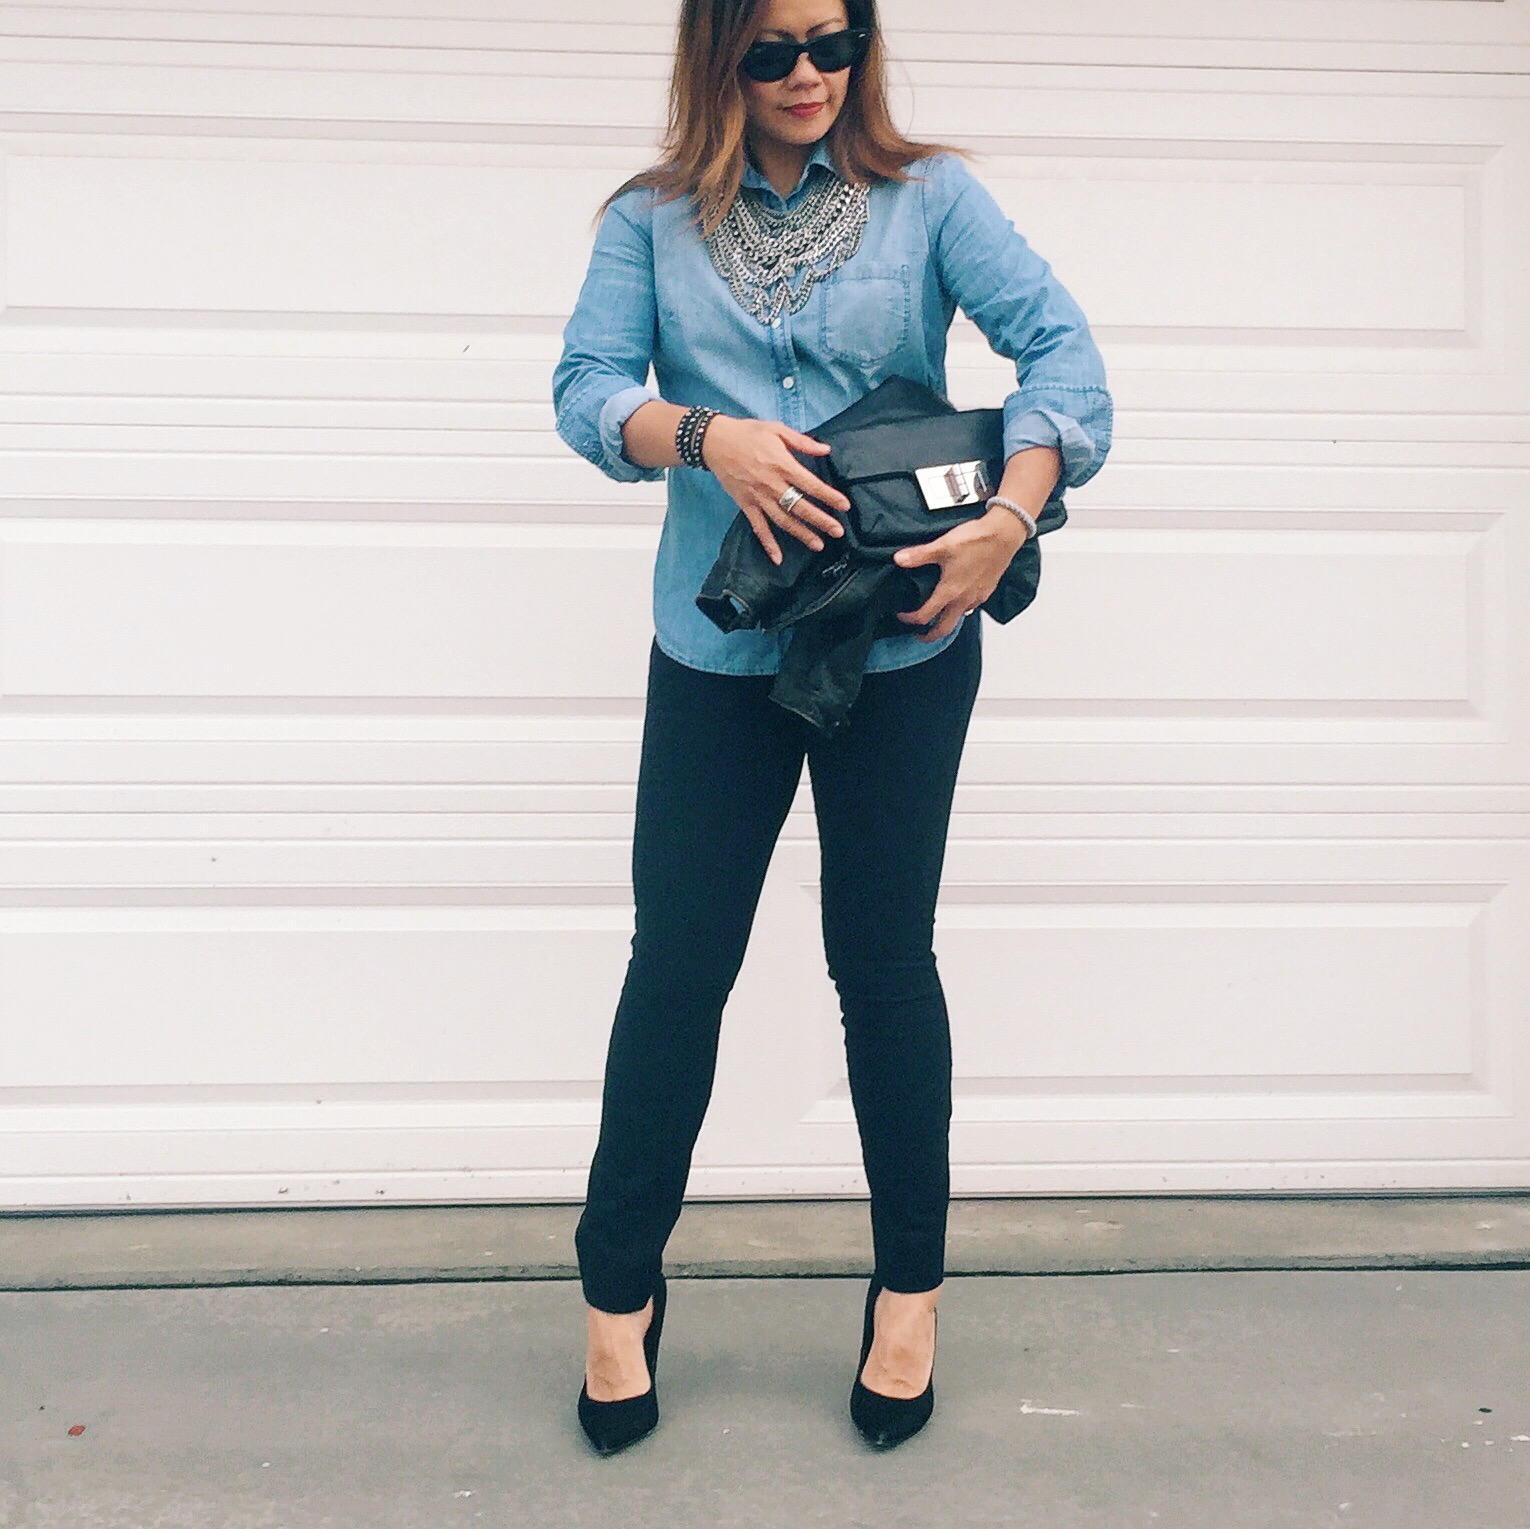 J. Crew   chambray shirt -   Gap   skinny pants -   Bauble Bar   statement necklace -   Sam Edelman   pumps.